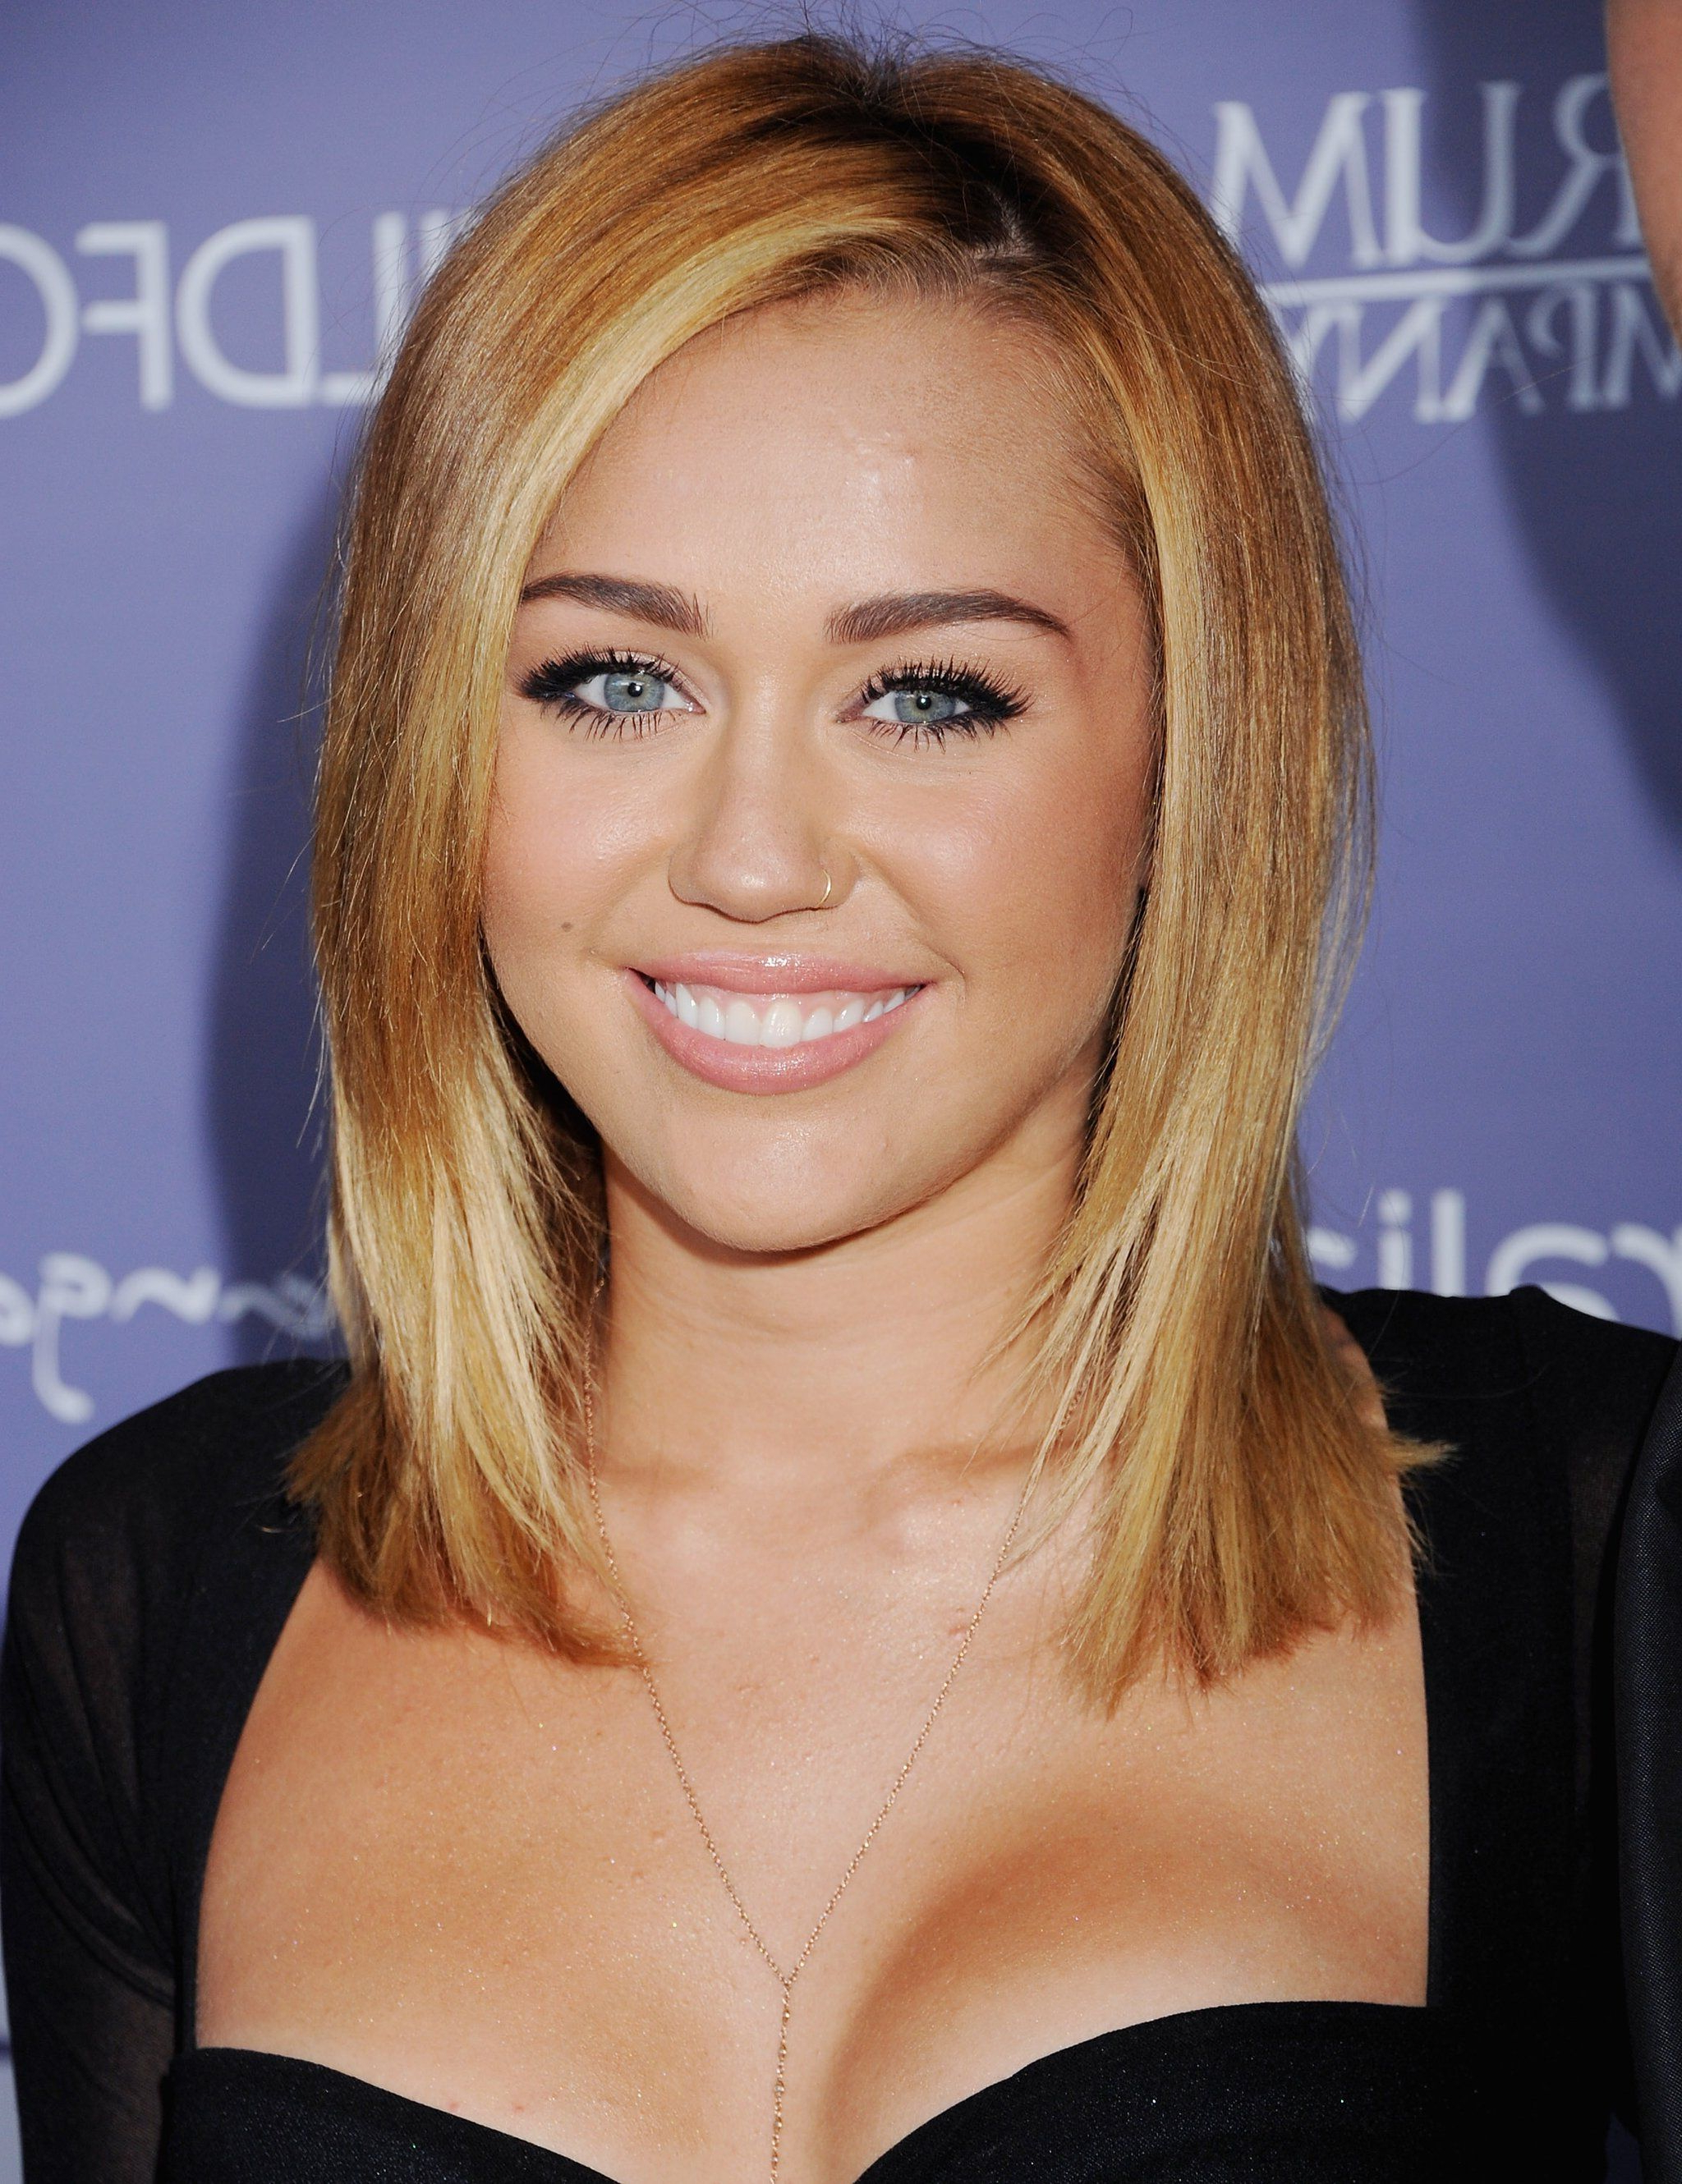 Hair, Hair Styles And Hair Cuts Inside Recent Medium Haircuts Like Miley Cyrus (View 6 of 20)